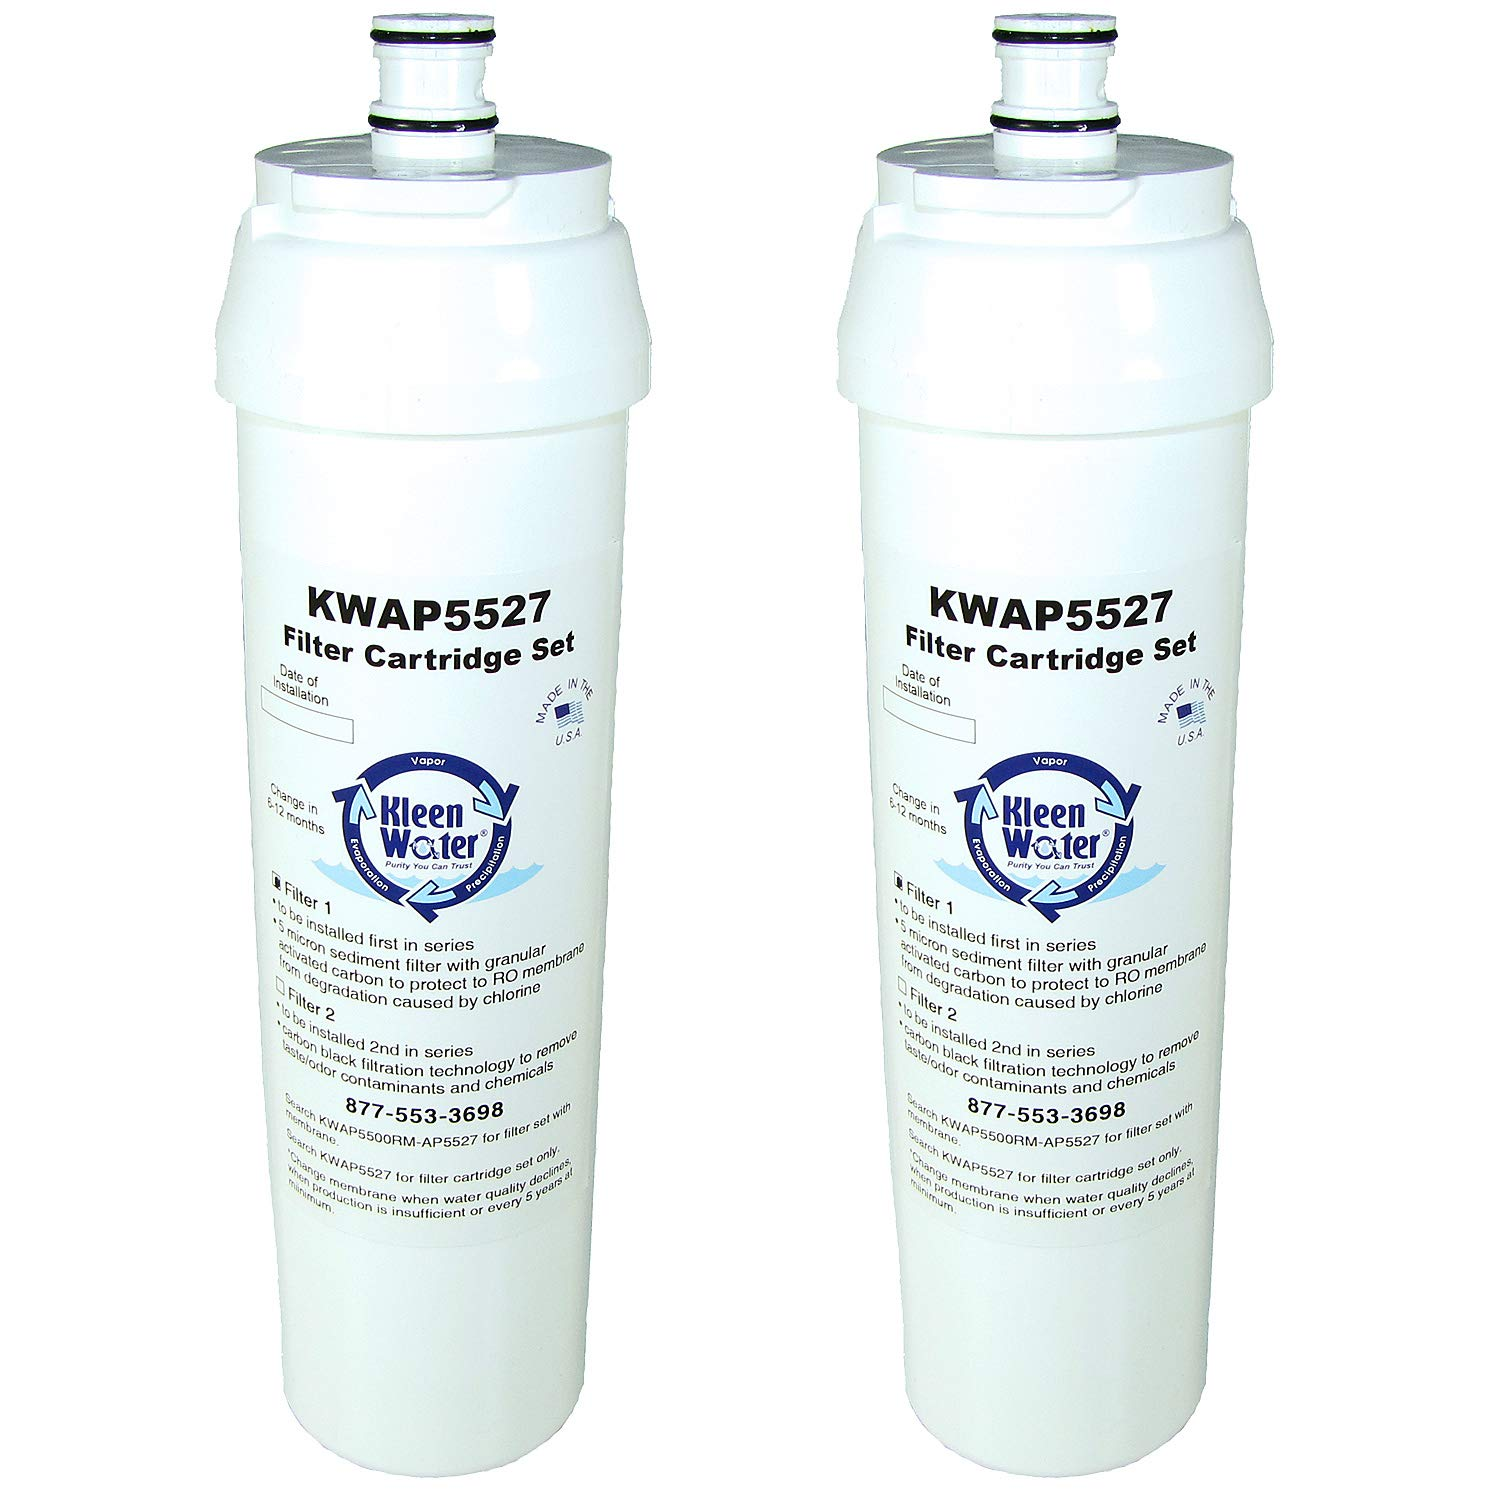 KleenWater KWAP5527 Dual Water Filter Cartridge Set for 3M AP5500 Reverse Osmosis System, Compatible with AP5527